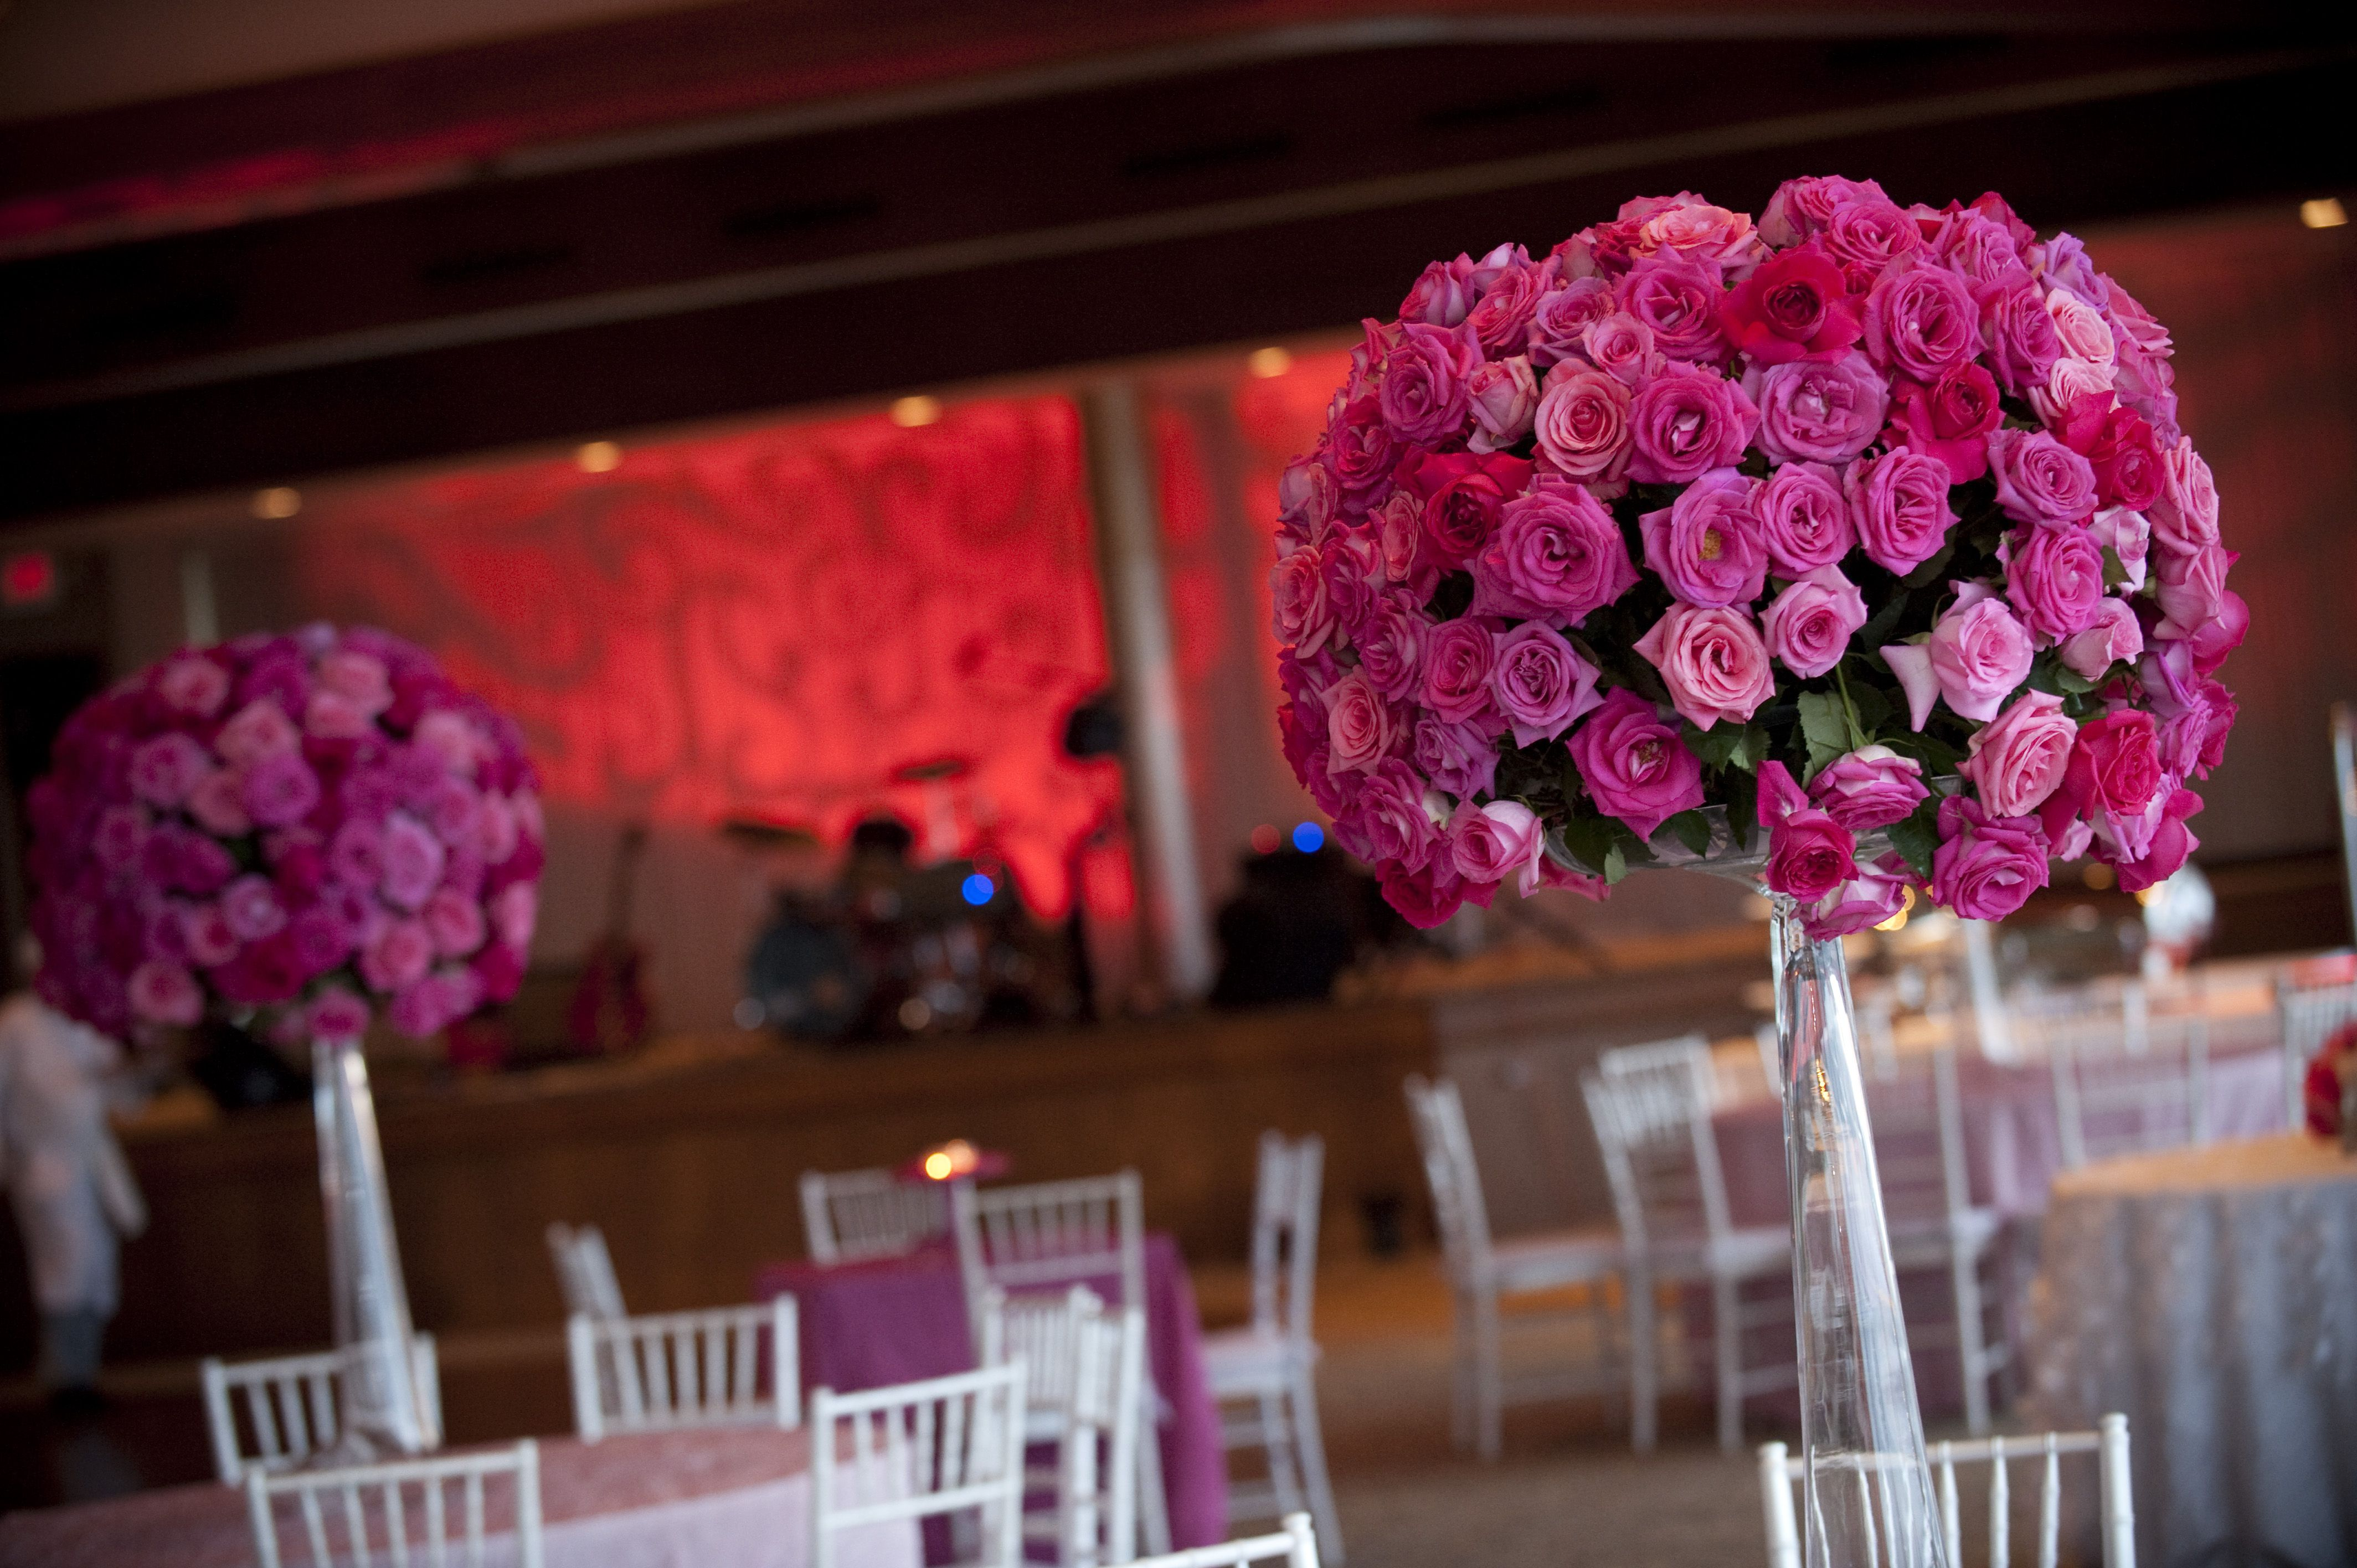 We Love These Tall Pink Flower Centerpieces Such A Stunning Look